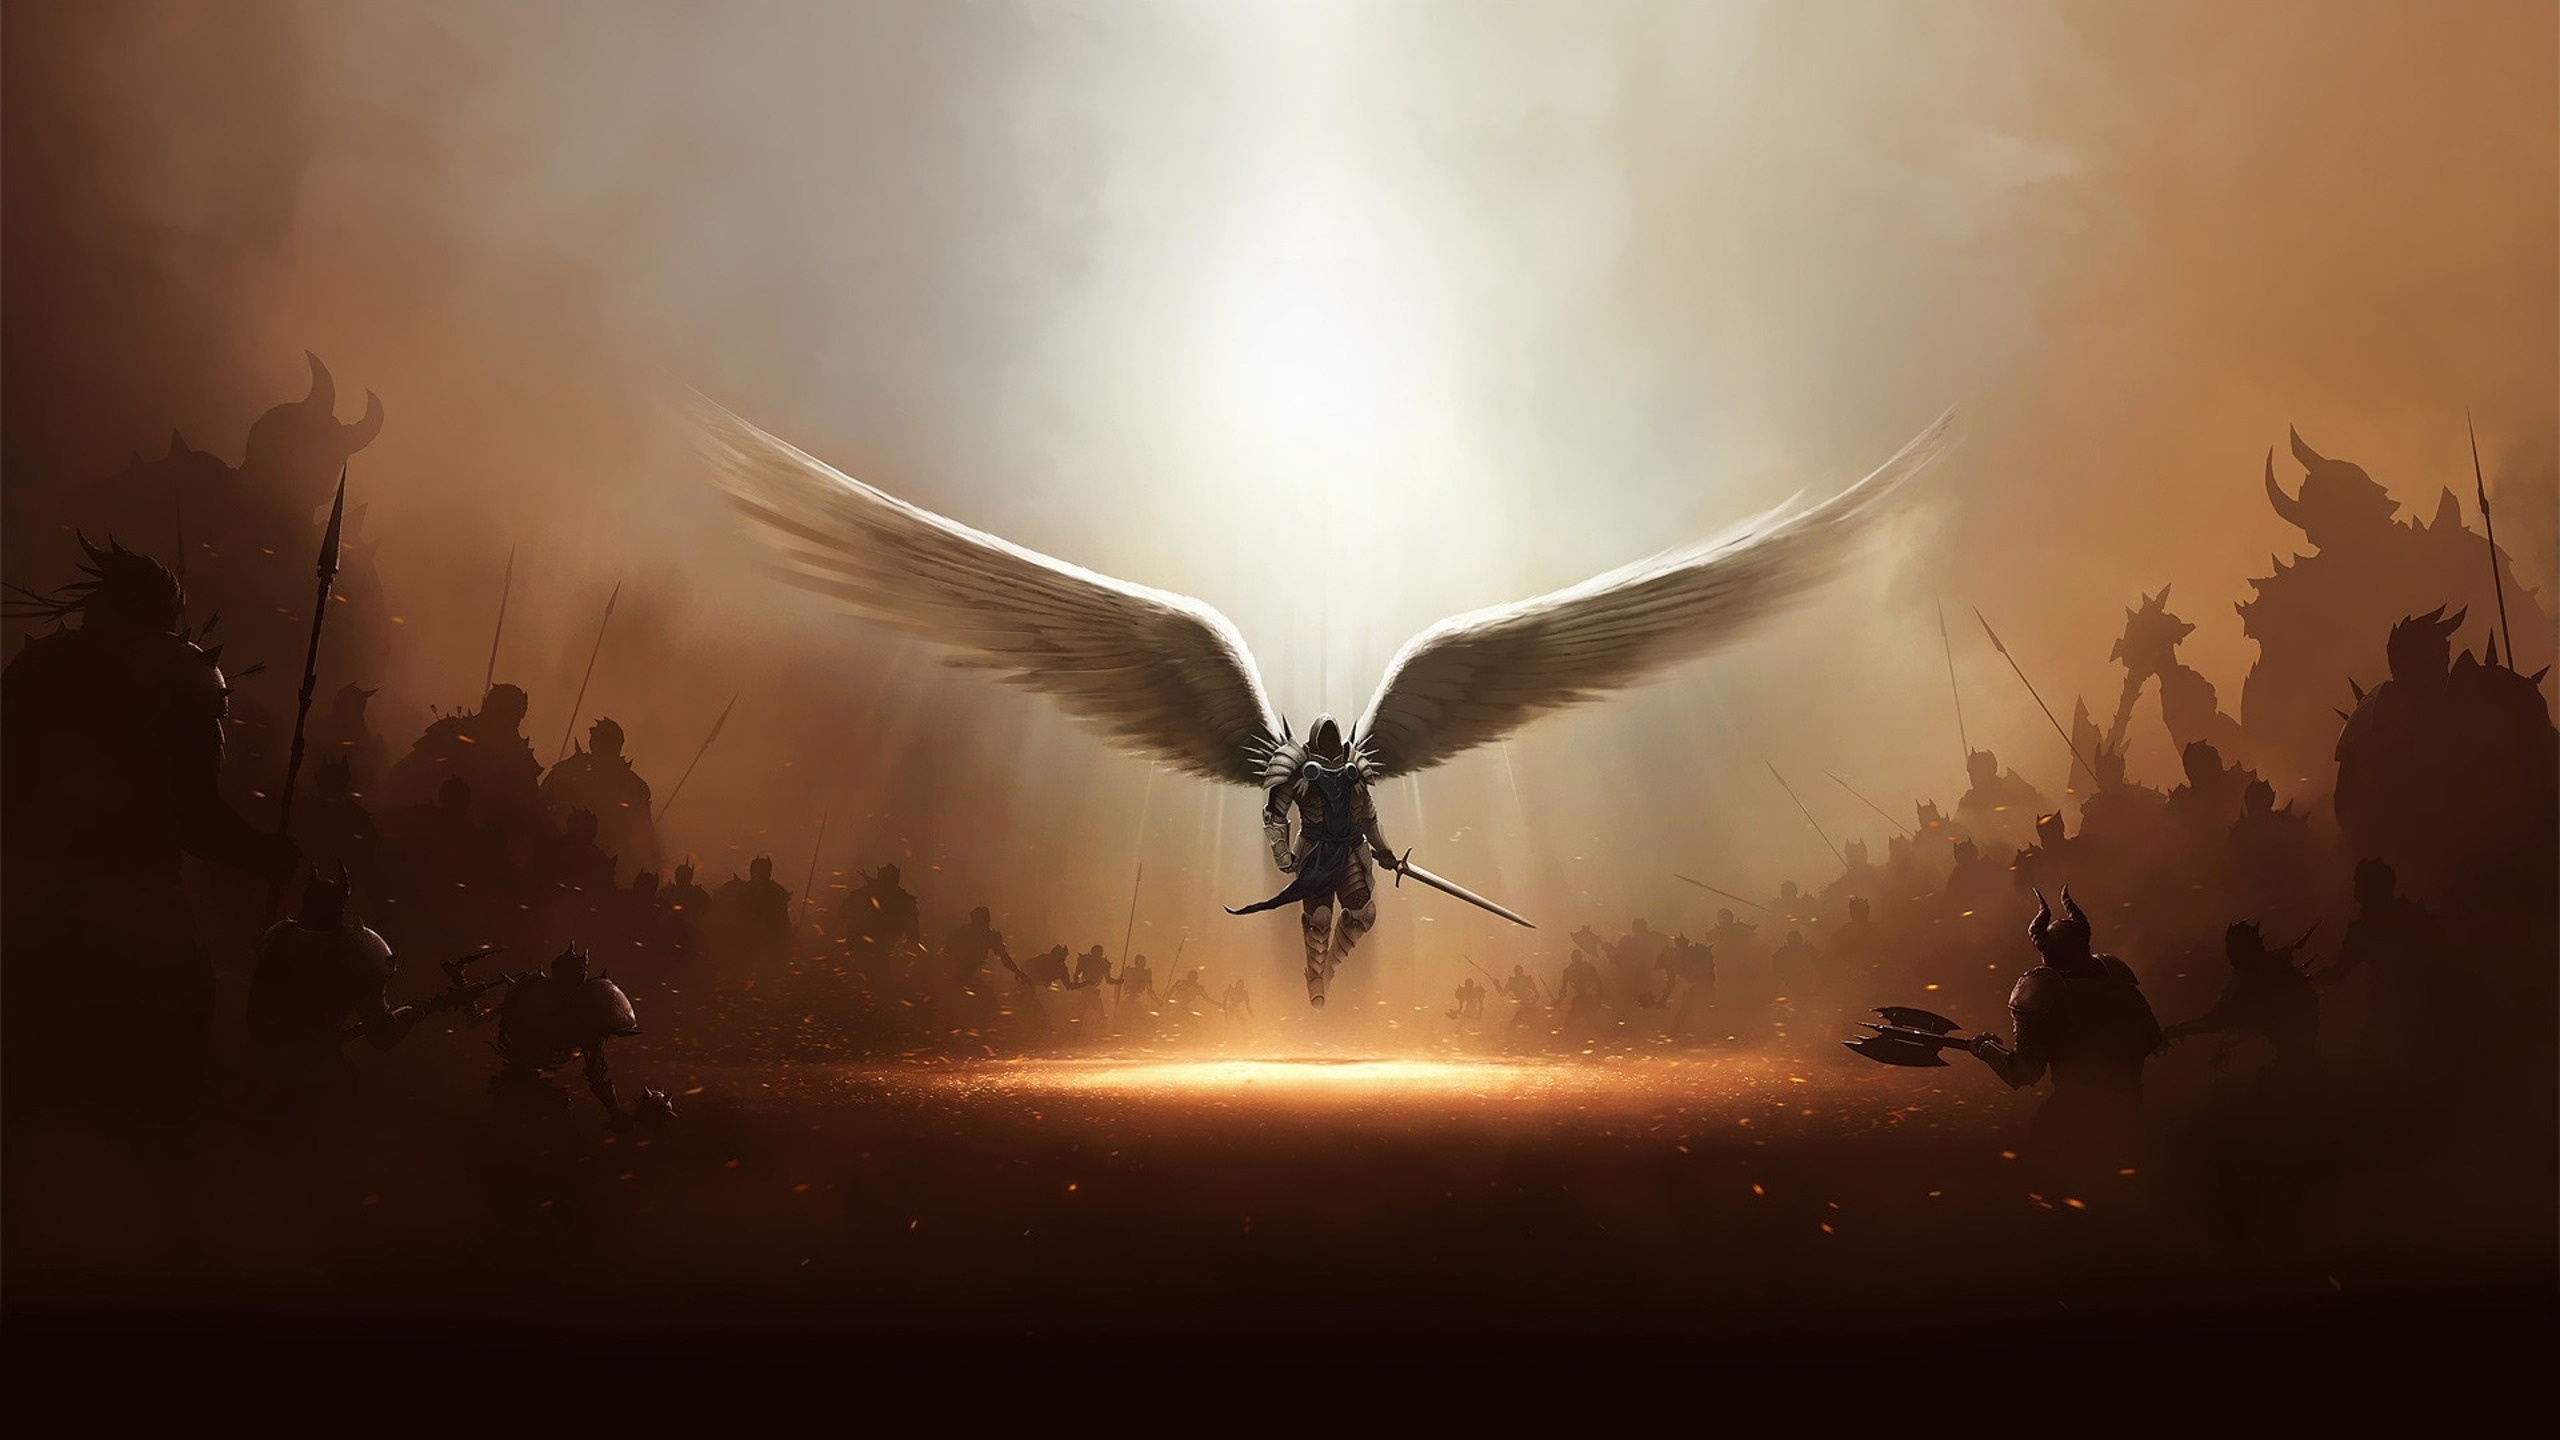 47 angel wallpapers, hd creative angel images, full hd wallpapers